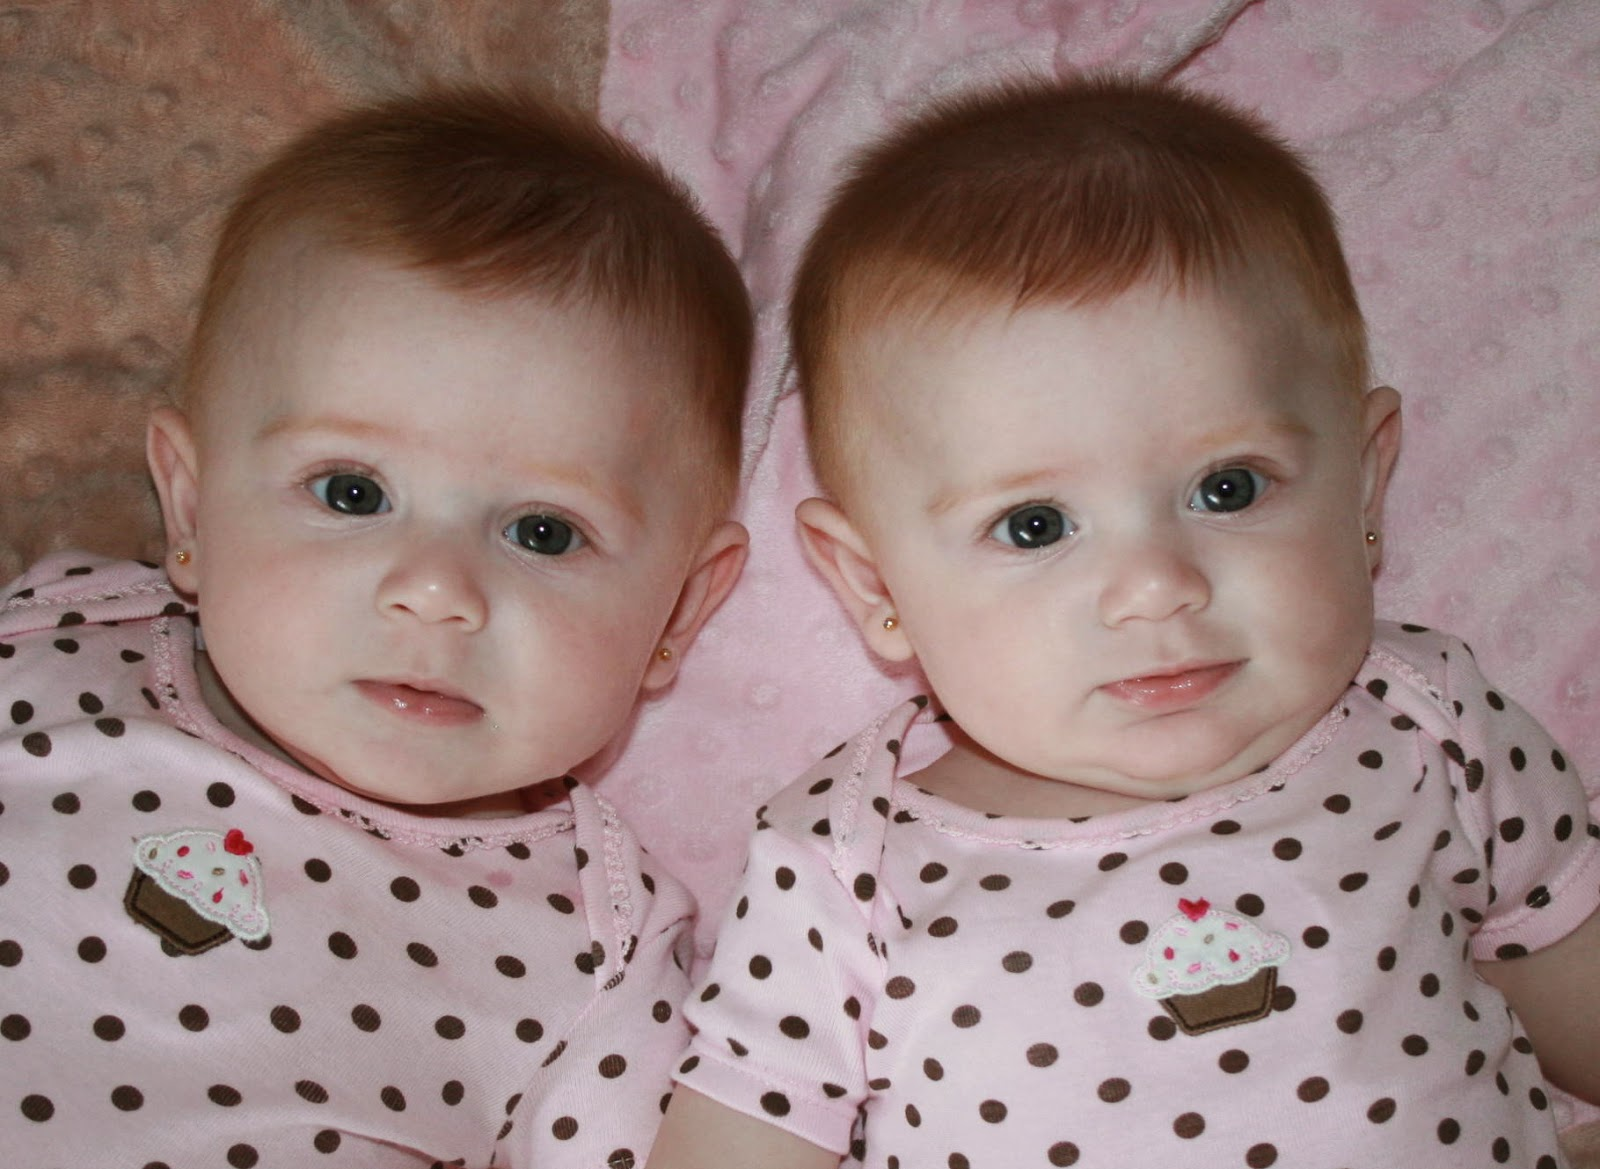 Download Twin girls baby hd wallpapers   Cute baby girl wallpapers 1600x1169